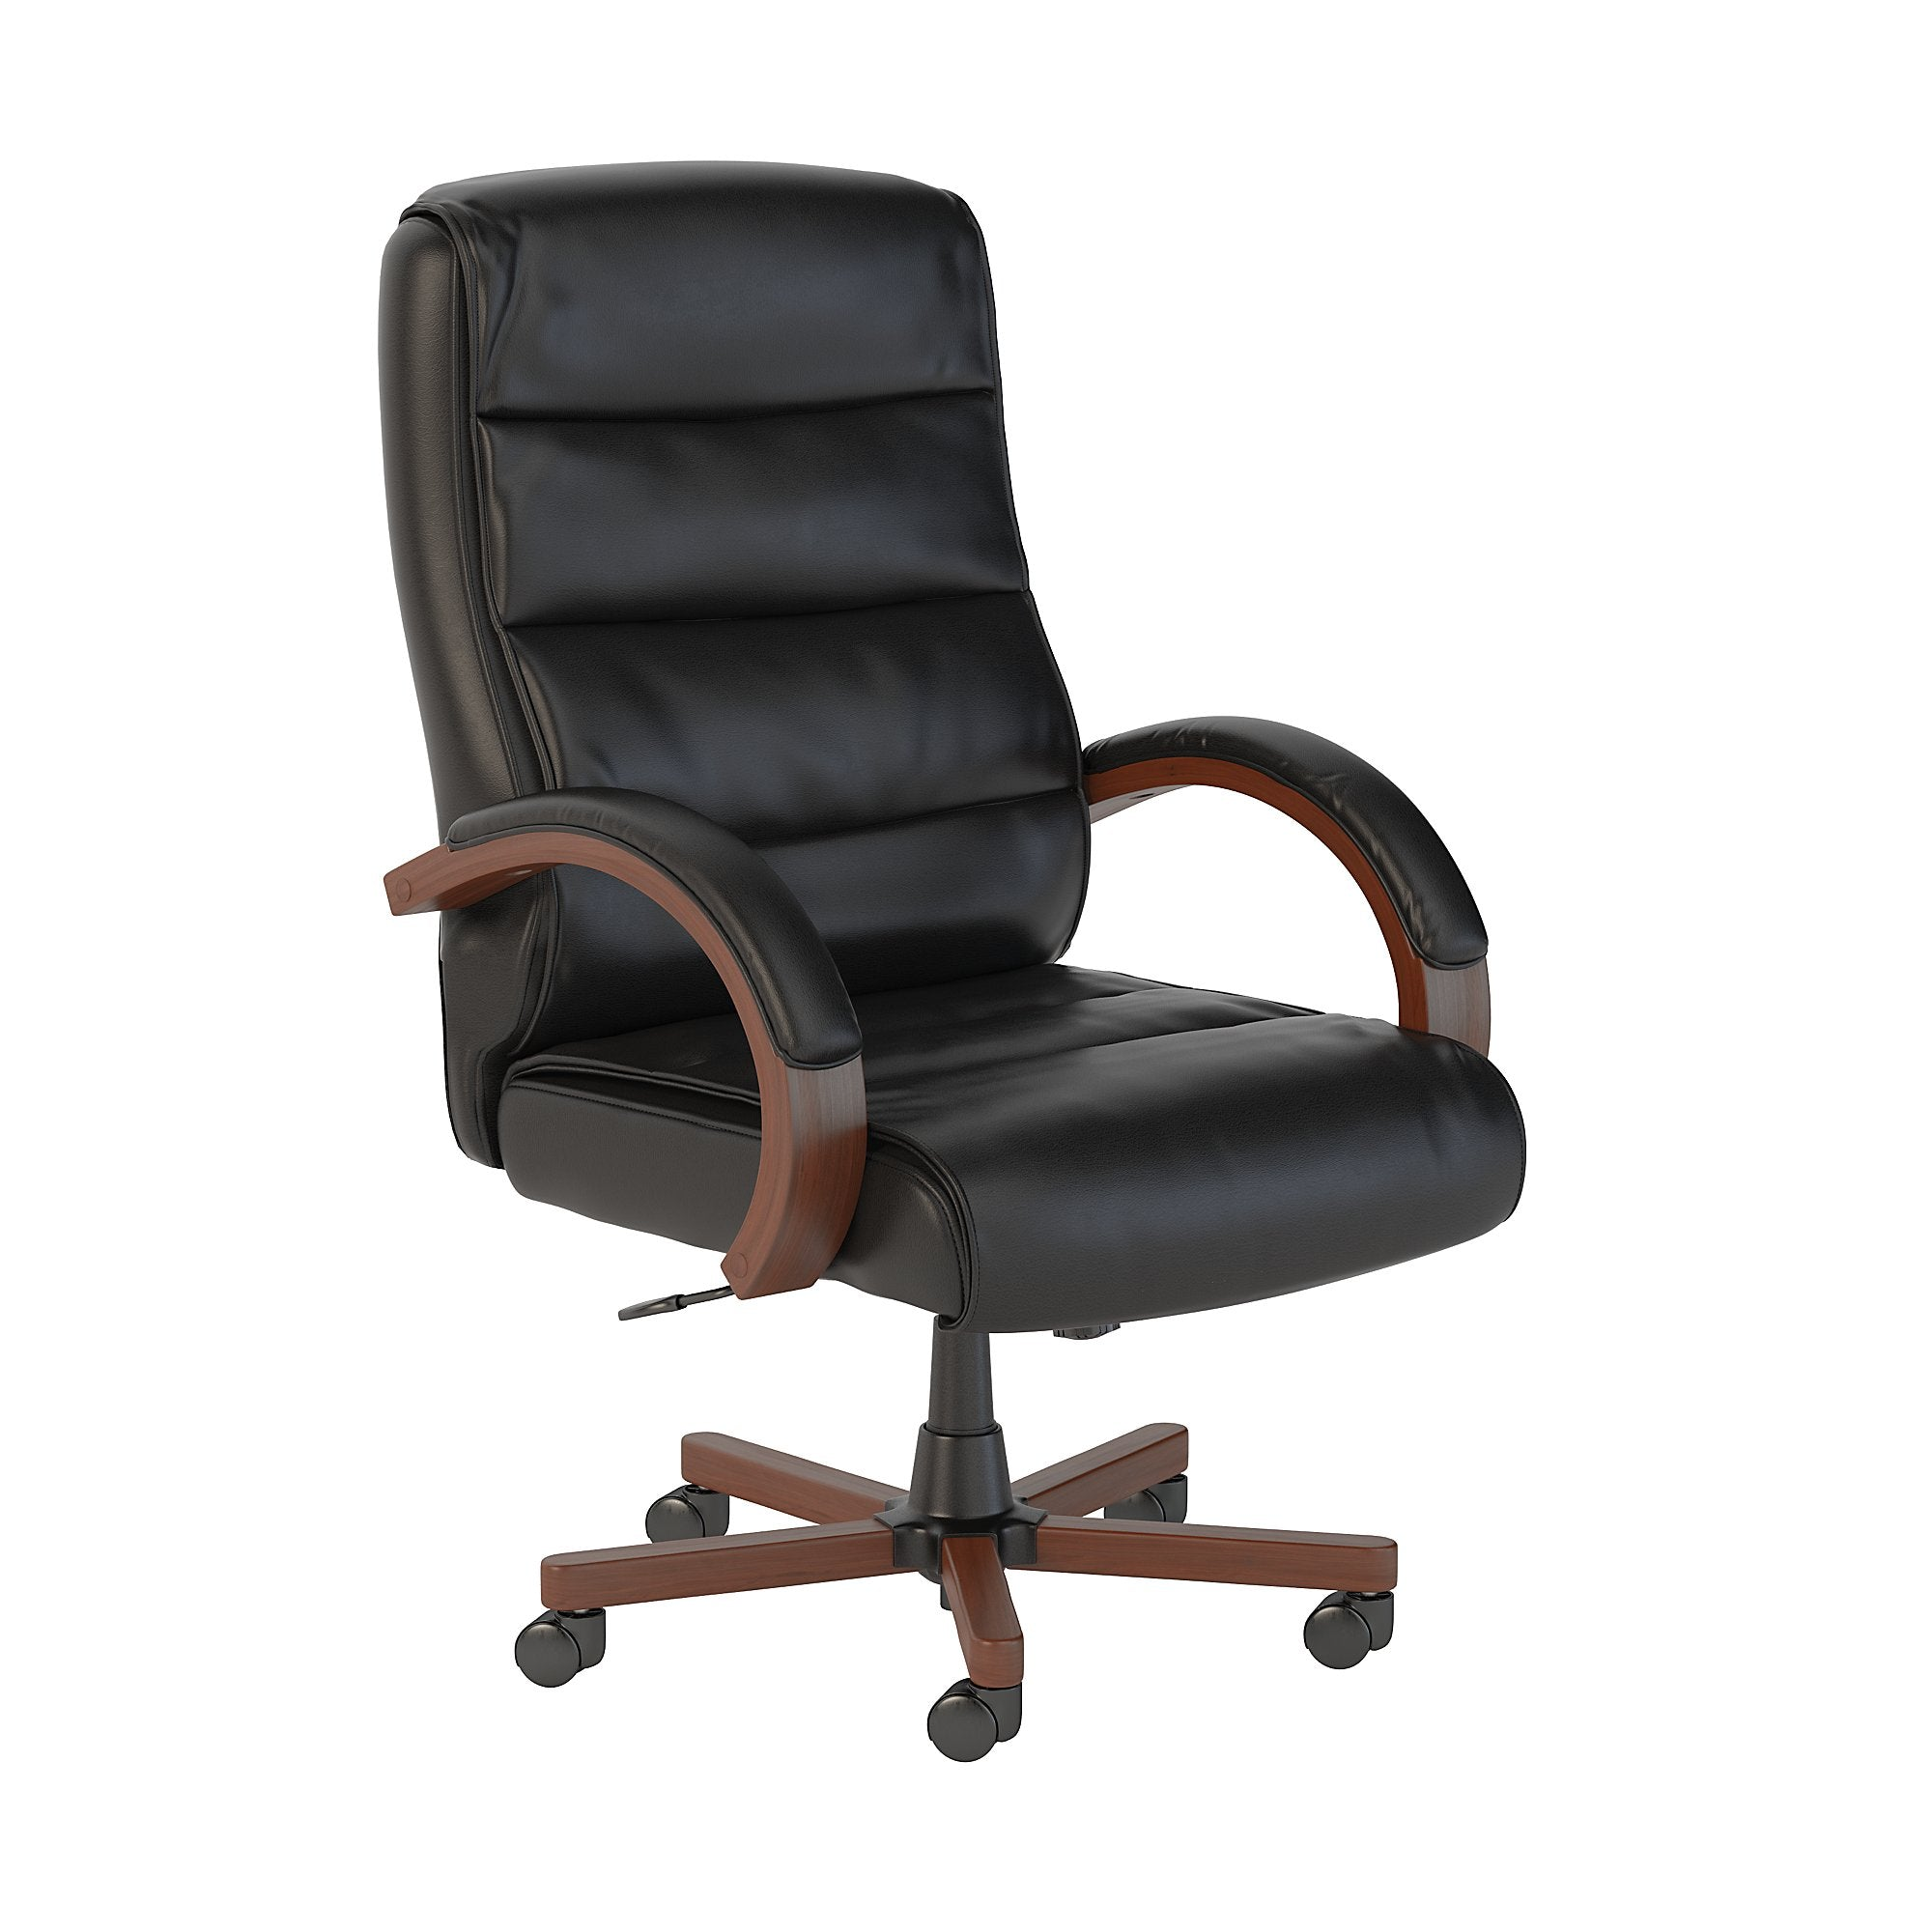 CH1501BLL-03 Bush Business Furniture Soft Sense High Back Black Leather Executive Office Chair with Wood Arms